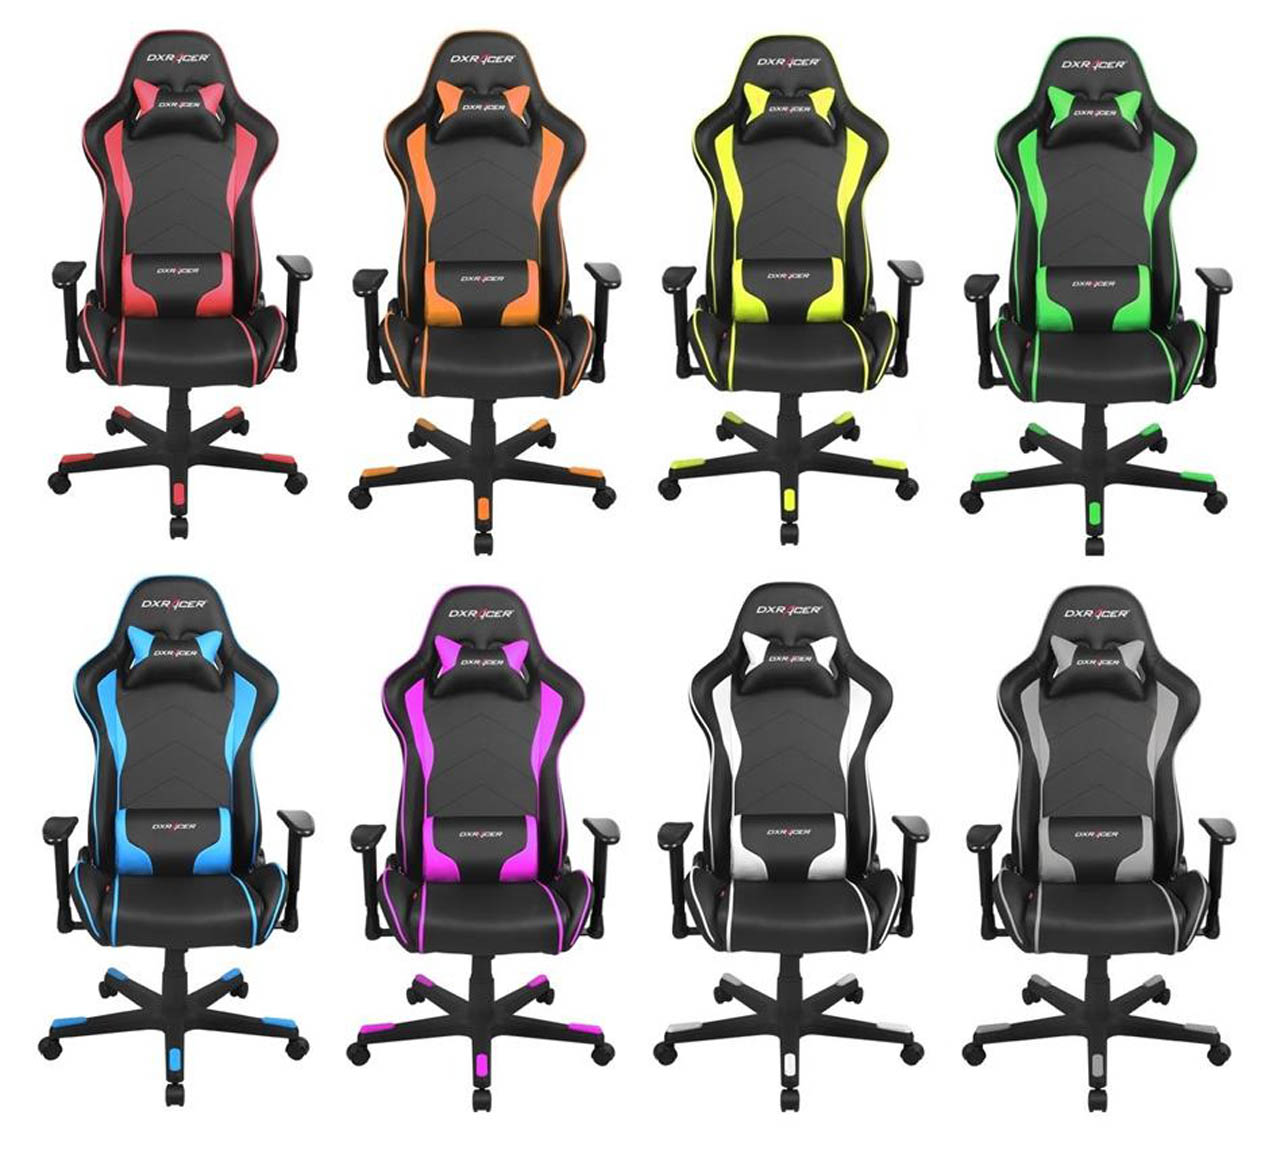 Dxracer Pc Gaming Chair Feel The Part Of A Real Race Car Driver Dxracer Gets Nz